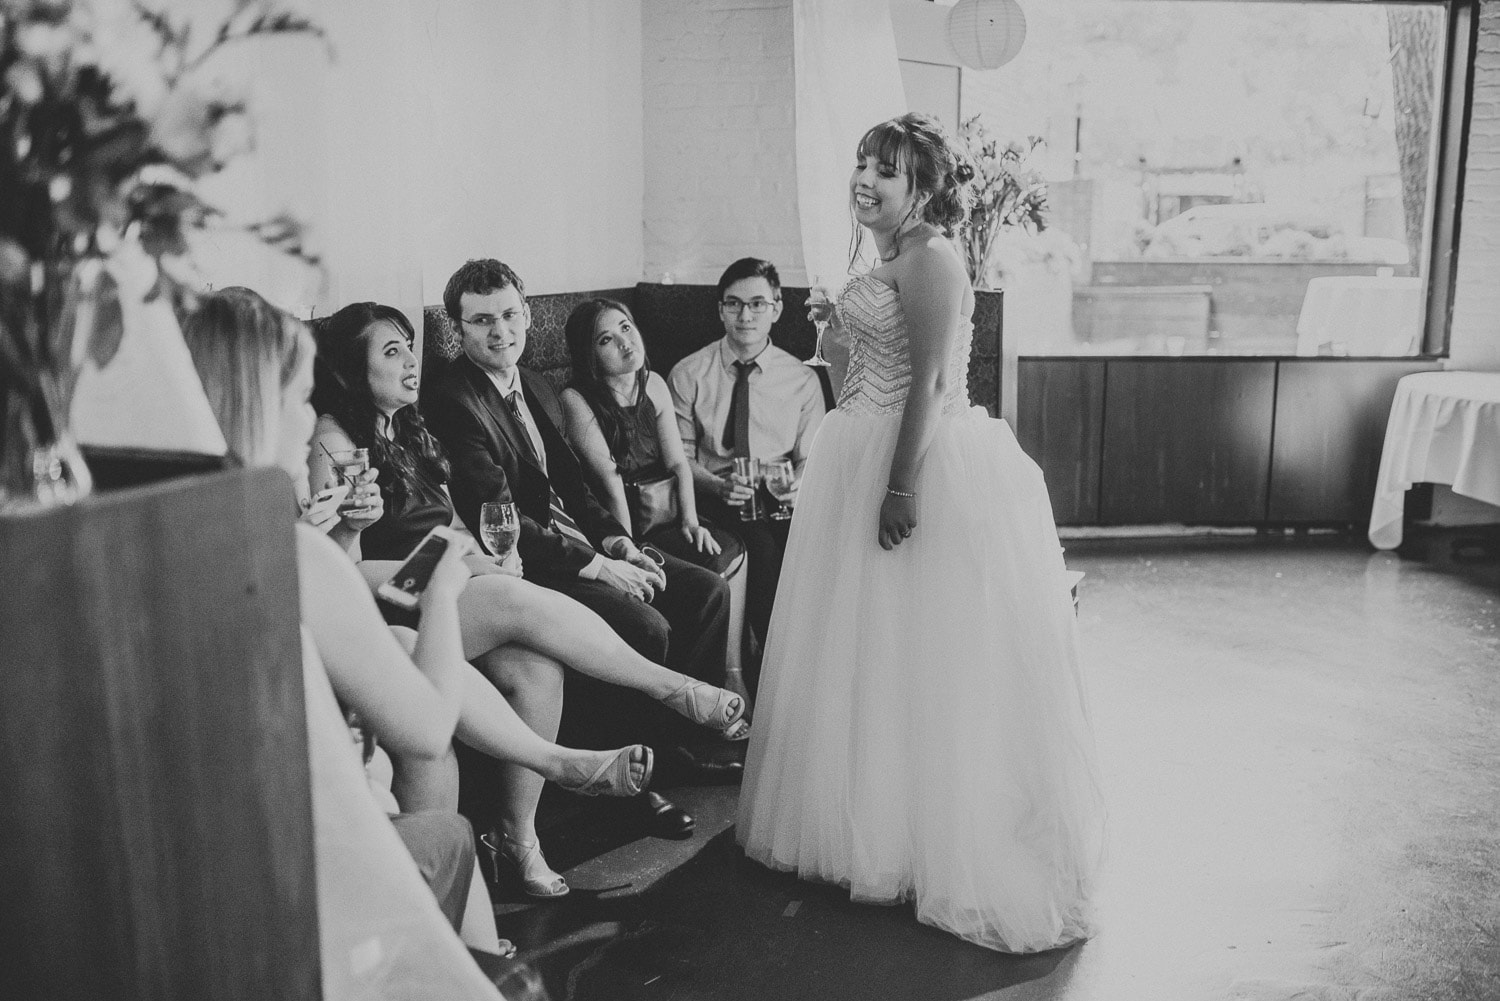 The bride is laughing with her guests.